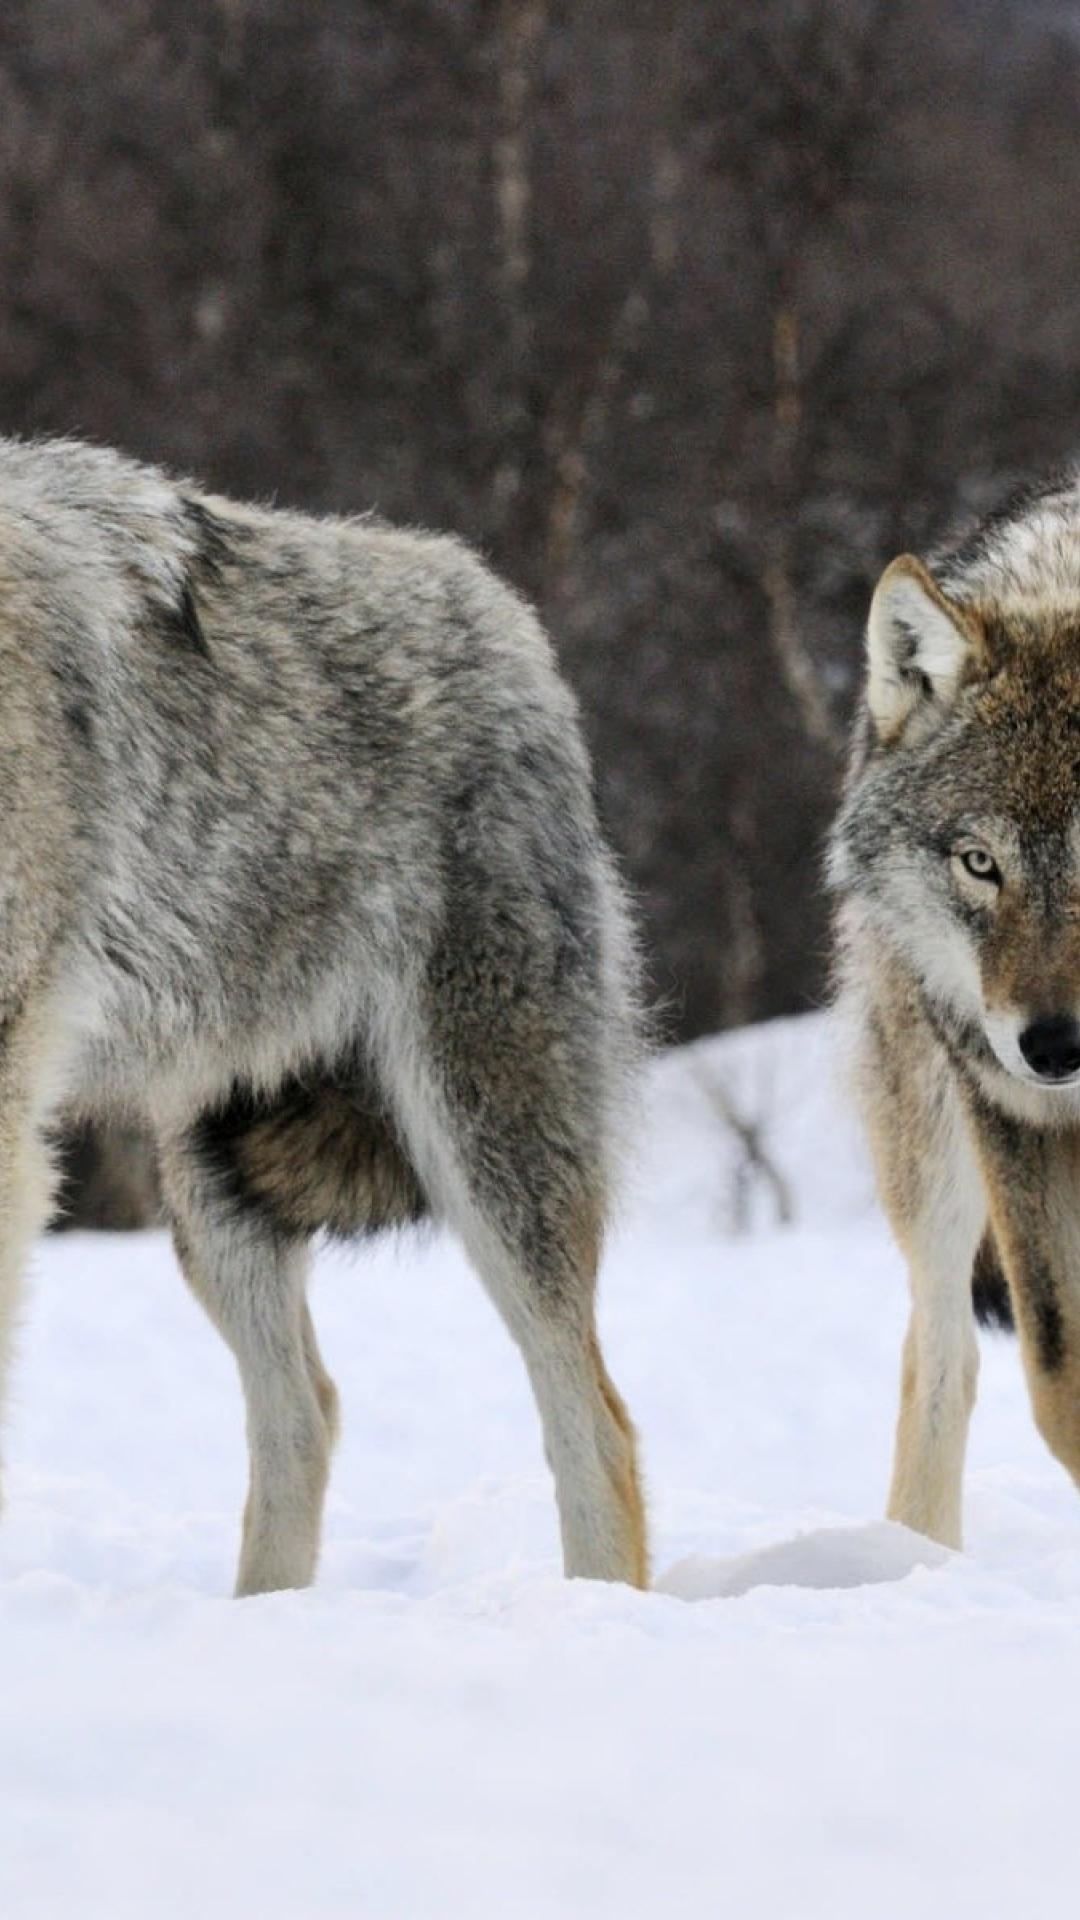 Wolf Pack Wallpapers - Top Free Wolf Pack Backgrounds ... - photo#8